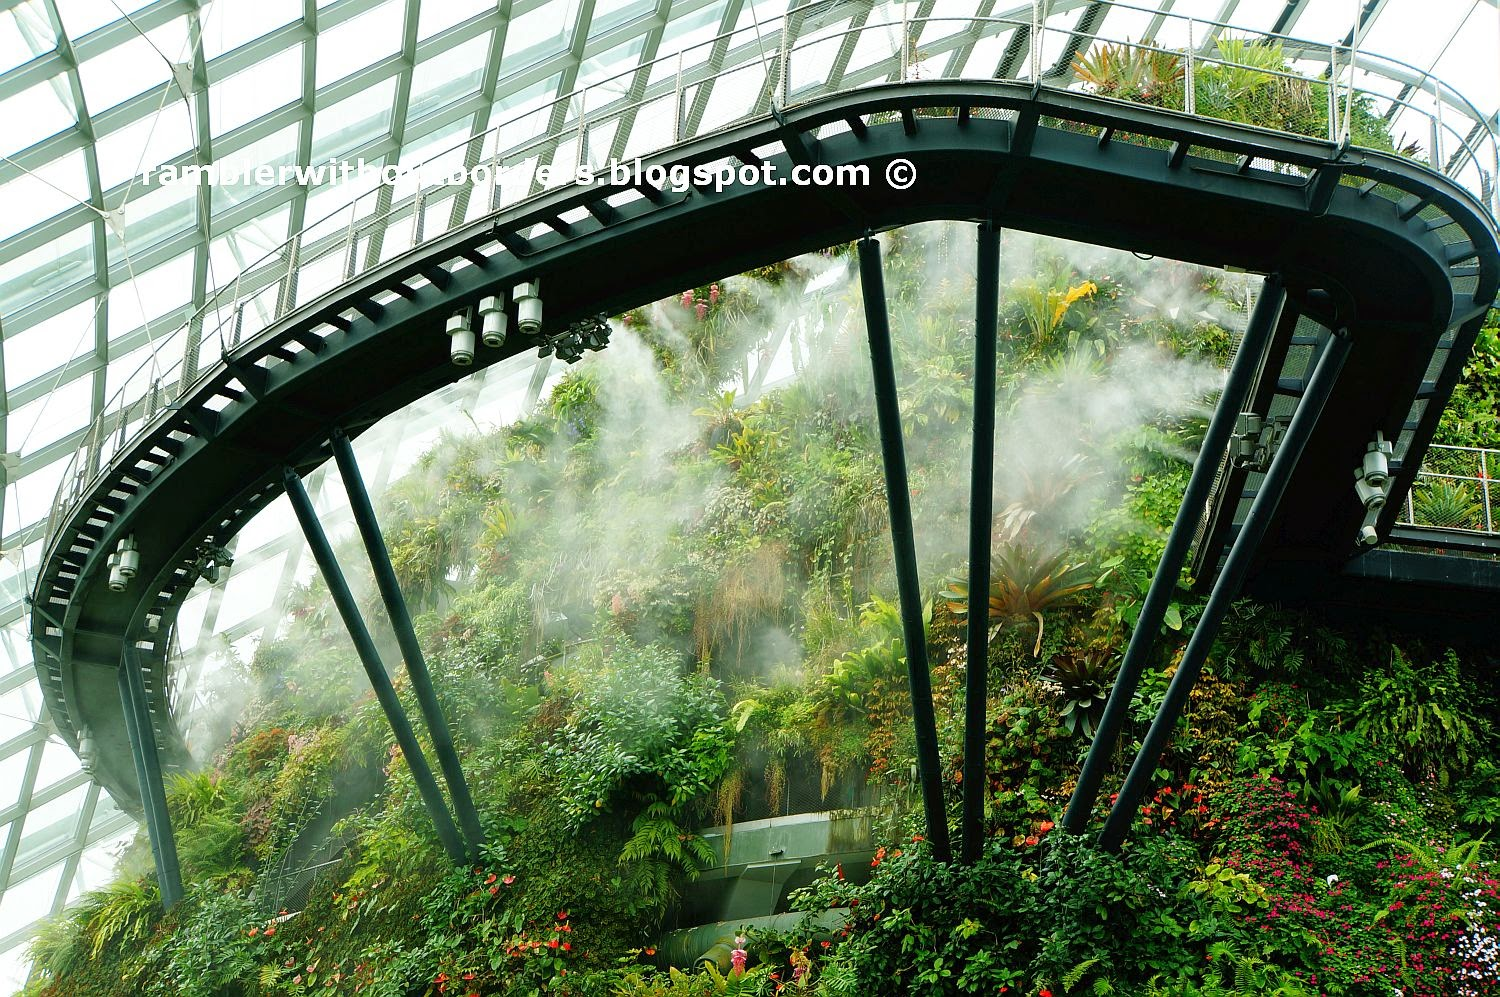 Cantilevered walkway extends out of the man-made Cloud Mountain, Cloud Forest Dome, Gardens by the Bay, Singapore